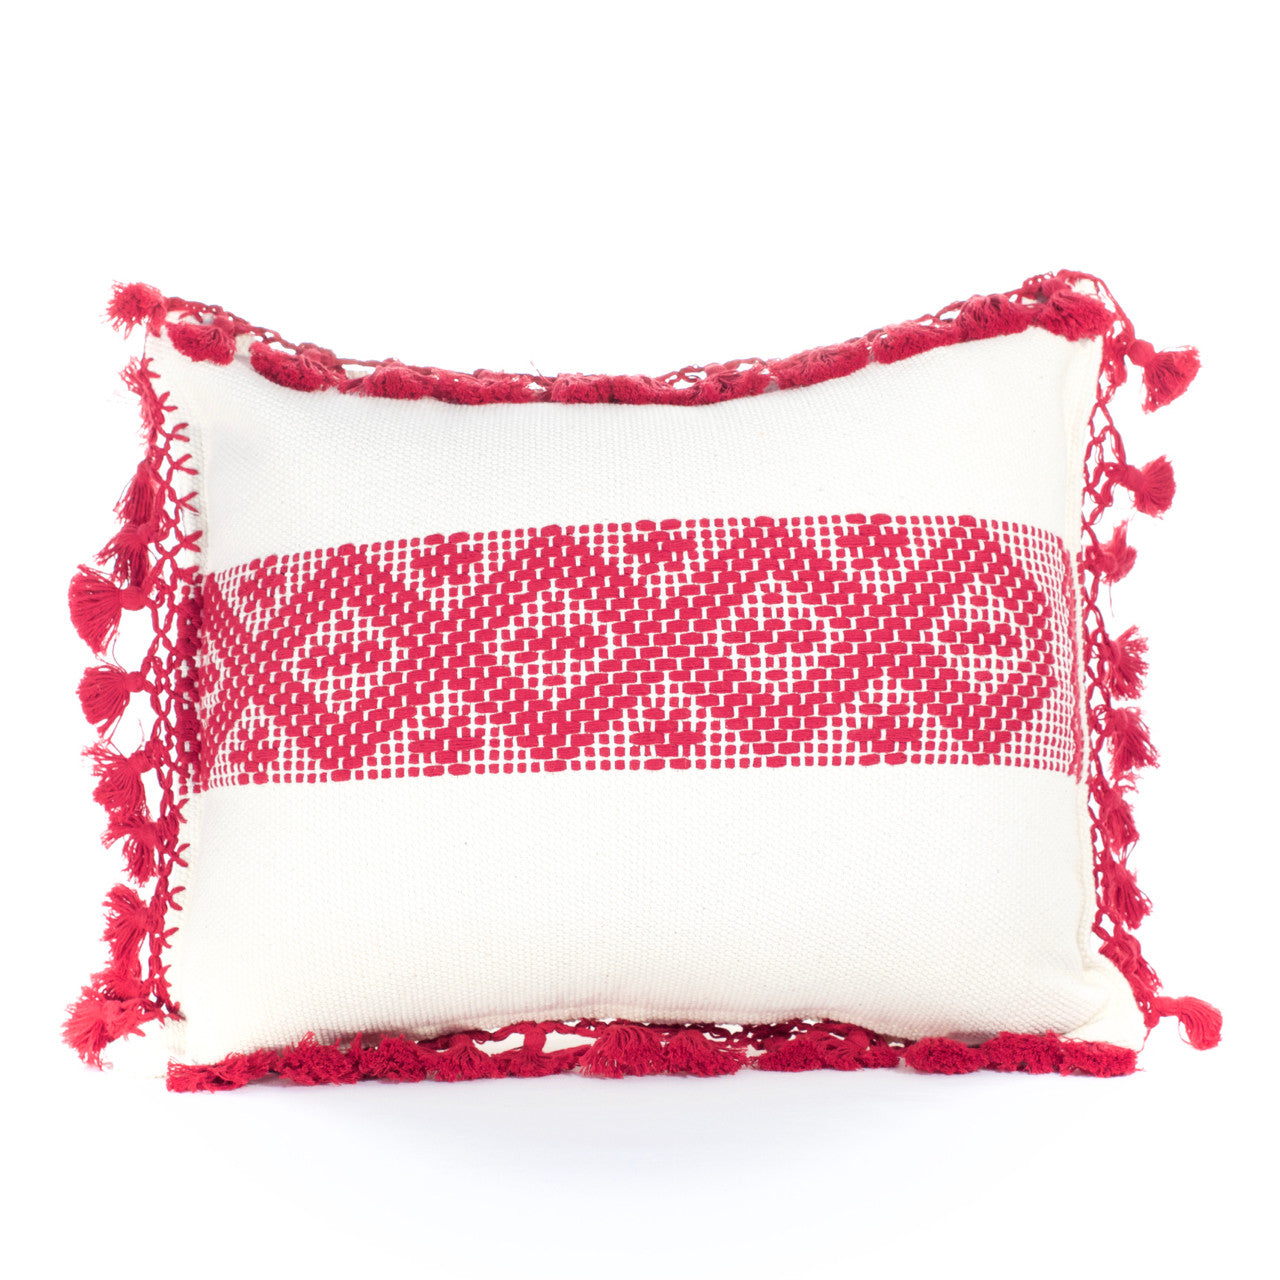 Jalieza Cushion - Large  Cushion Burgundy - Cielo Collective handmade Mexico Guatemala